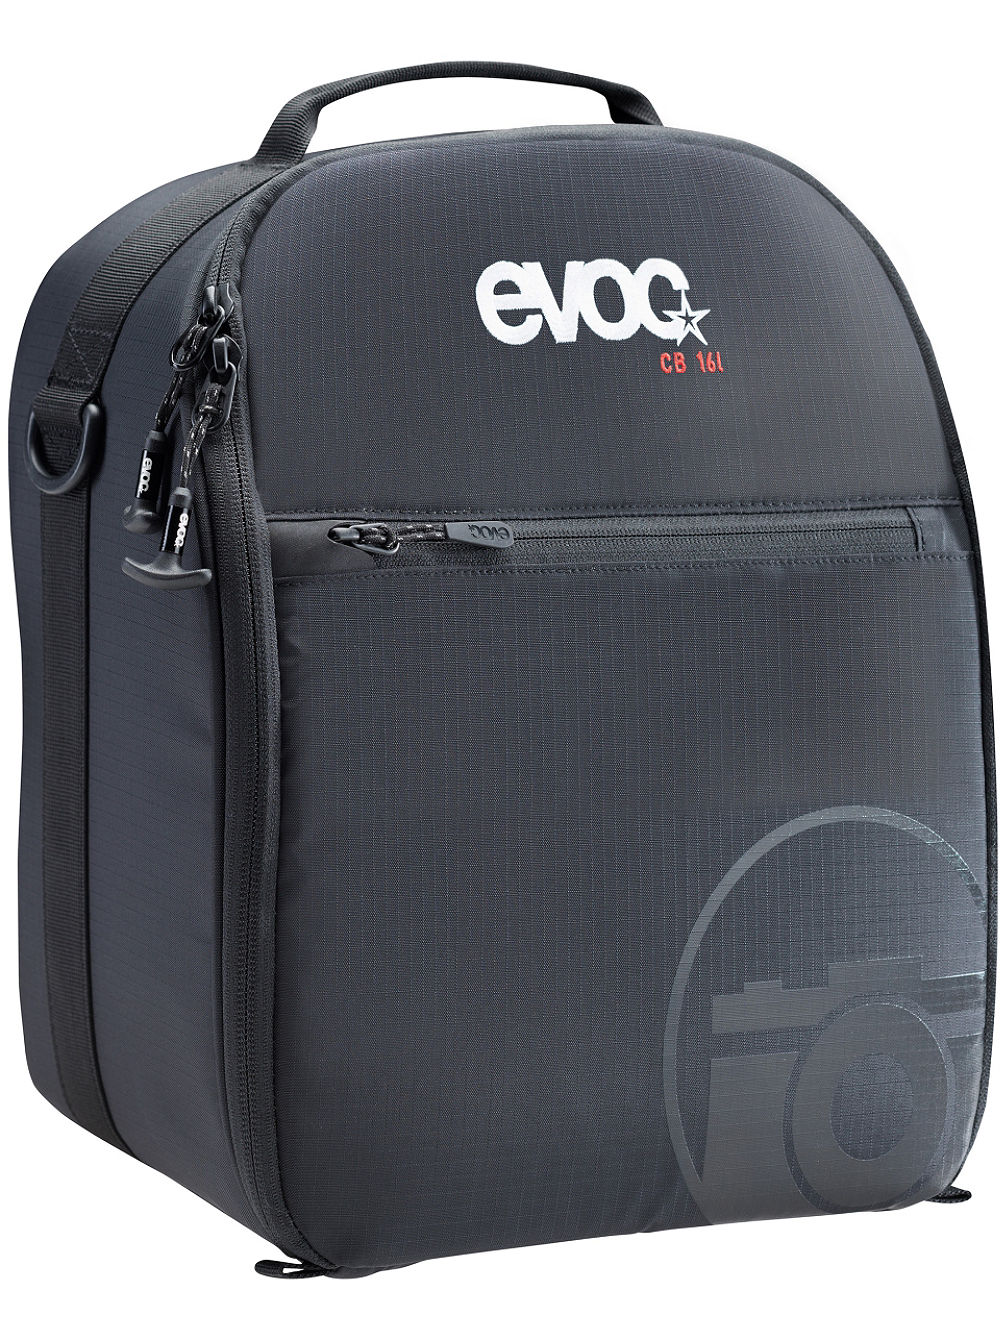 evoc-camera-block-16l-backpack